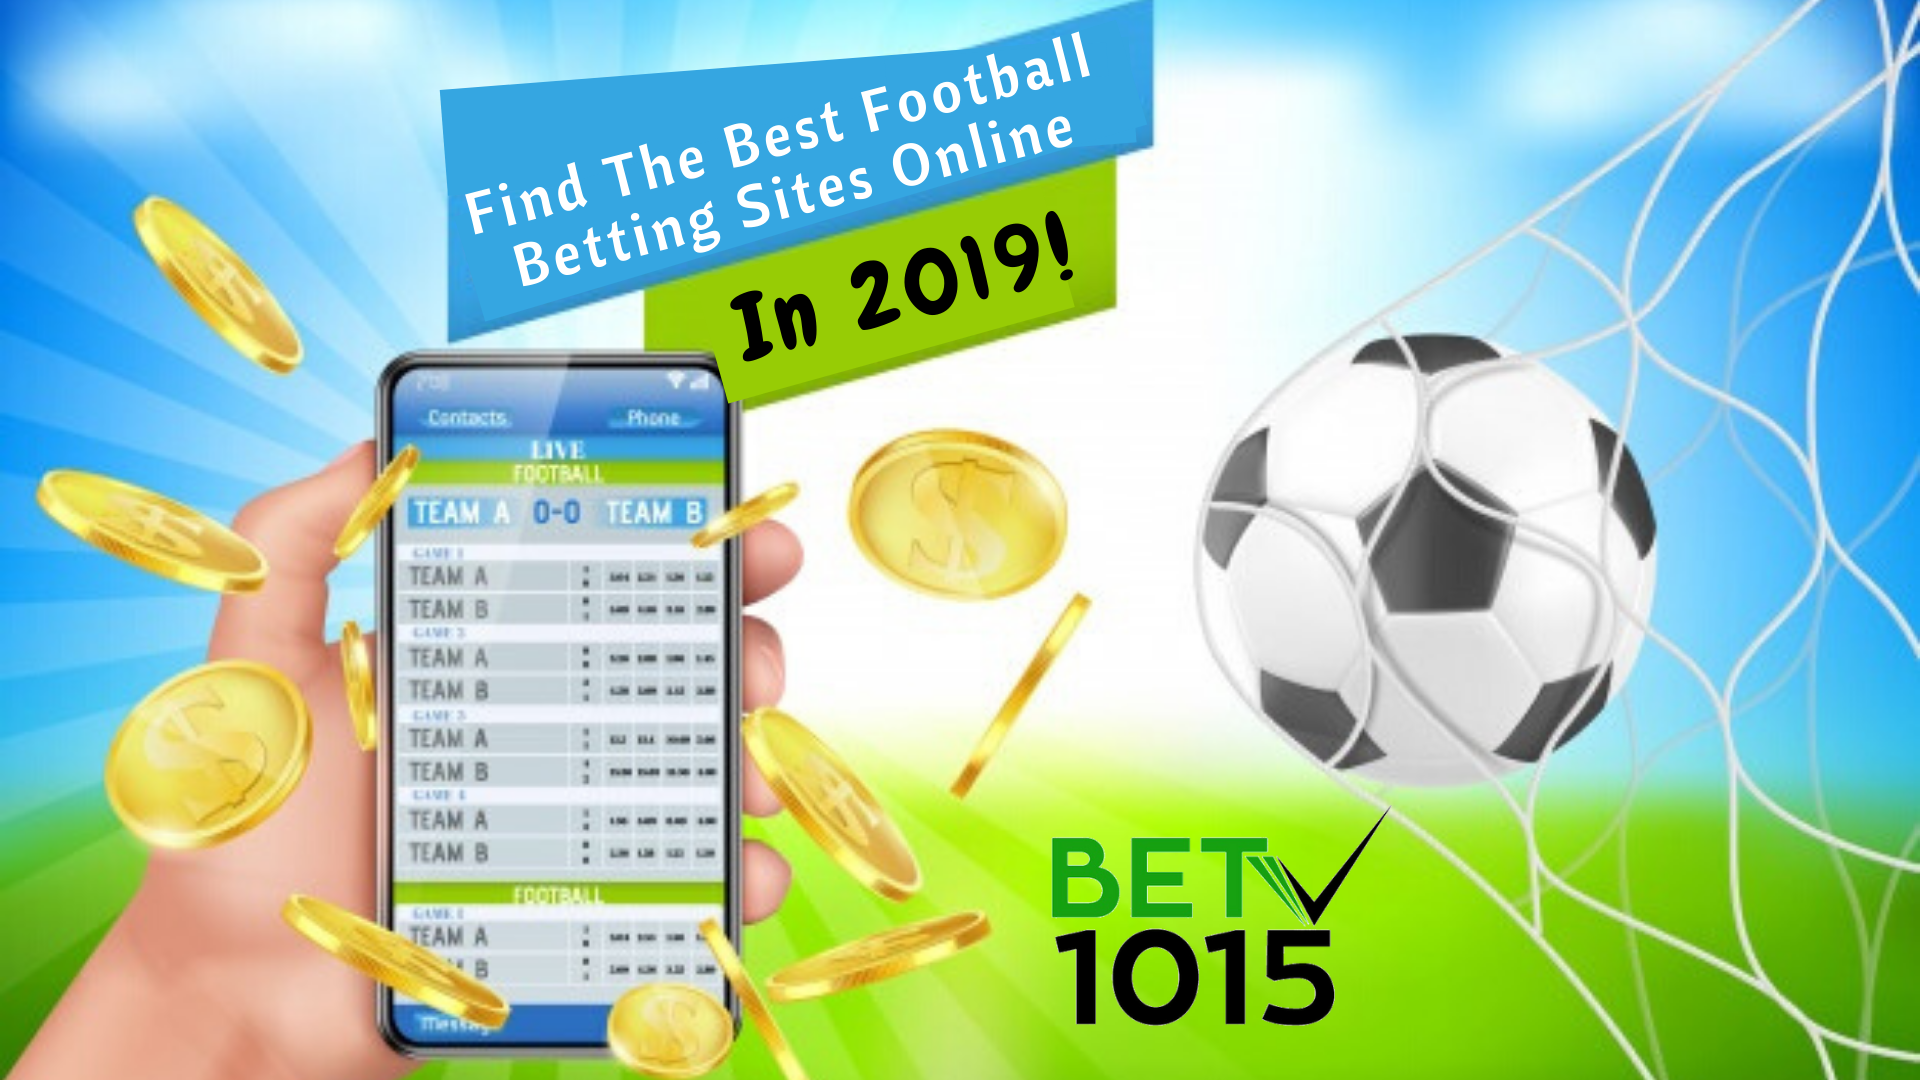 Best Football Betting Sites Top Uk Bookies For Football Bets In